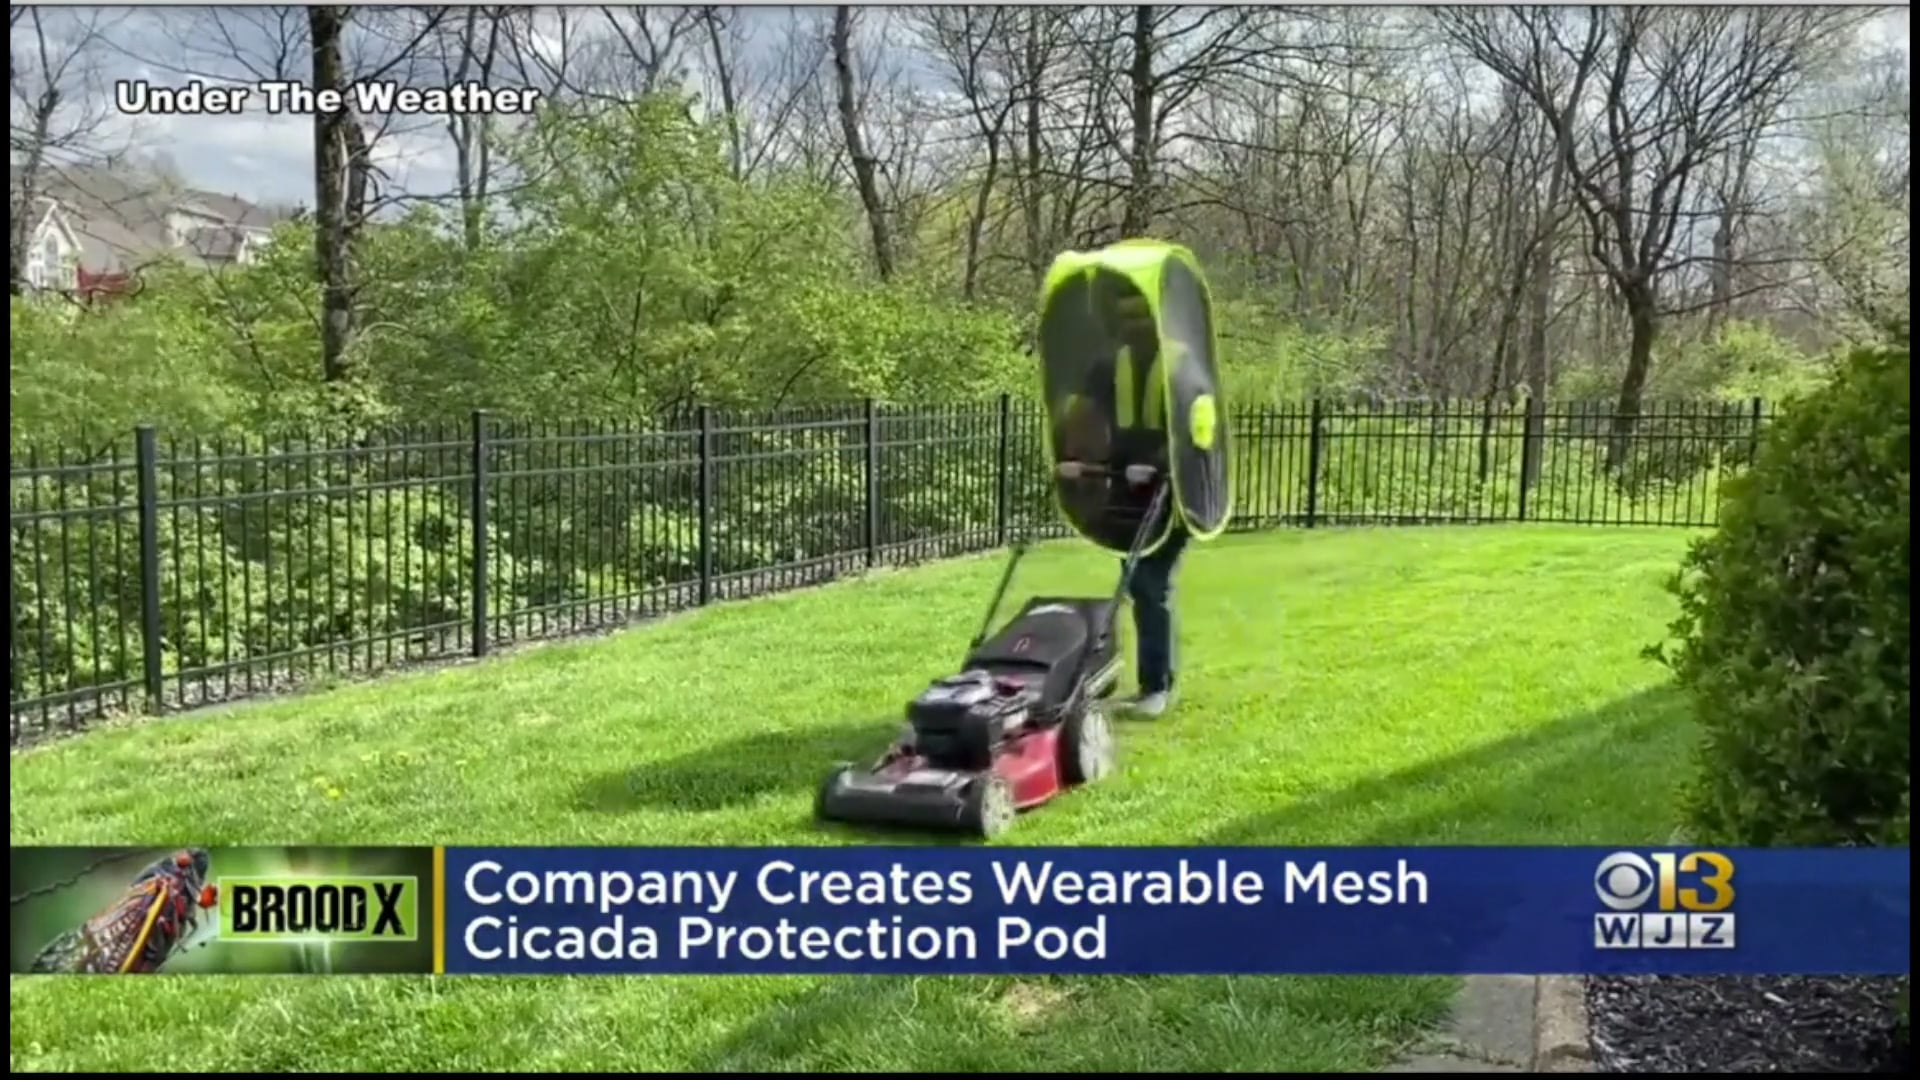 WJZ-TV CBS 13 Baltimore: Company Creates Wearable Mesh Cicada Protection Pod